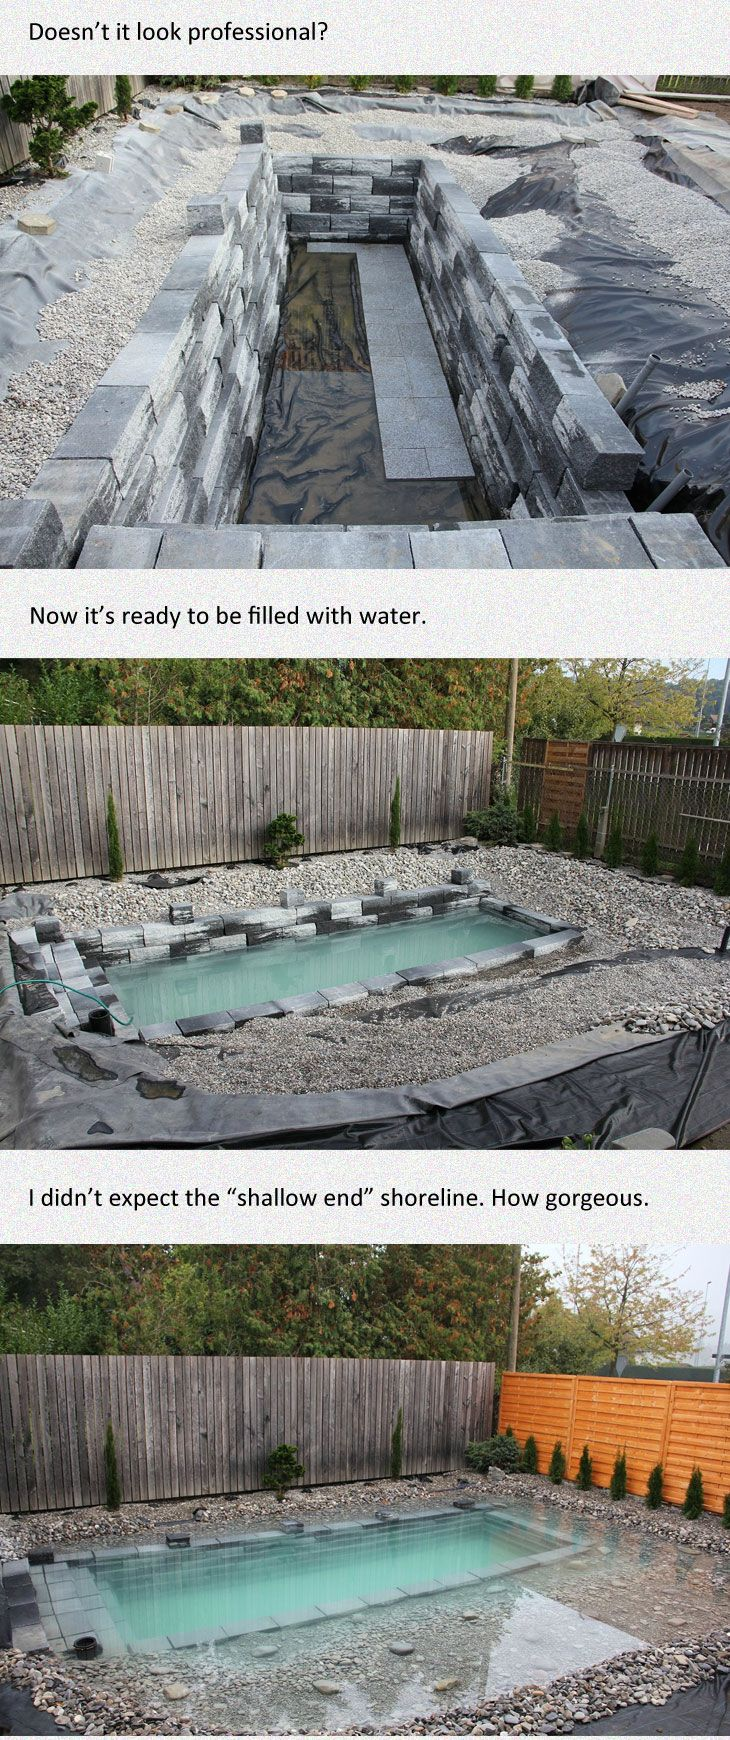 His Idea For A Backyard Seems Crazy At First But After Seeing The Result Absolutely Genius Backyard Ponds Backyard Natural Pool Backyard diy natural pool